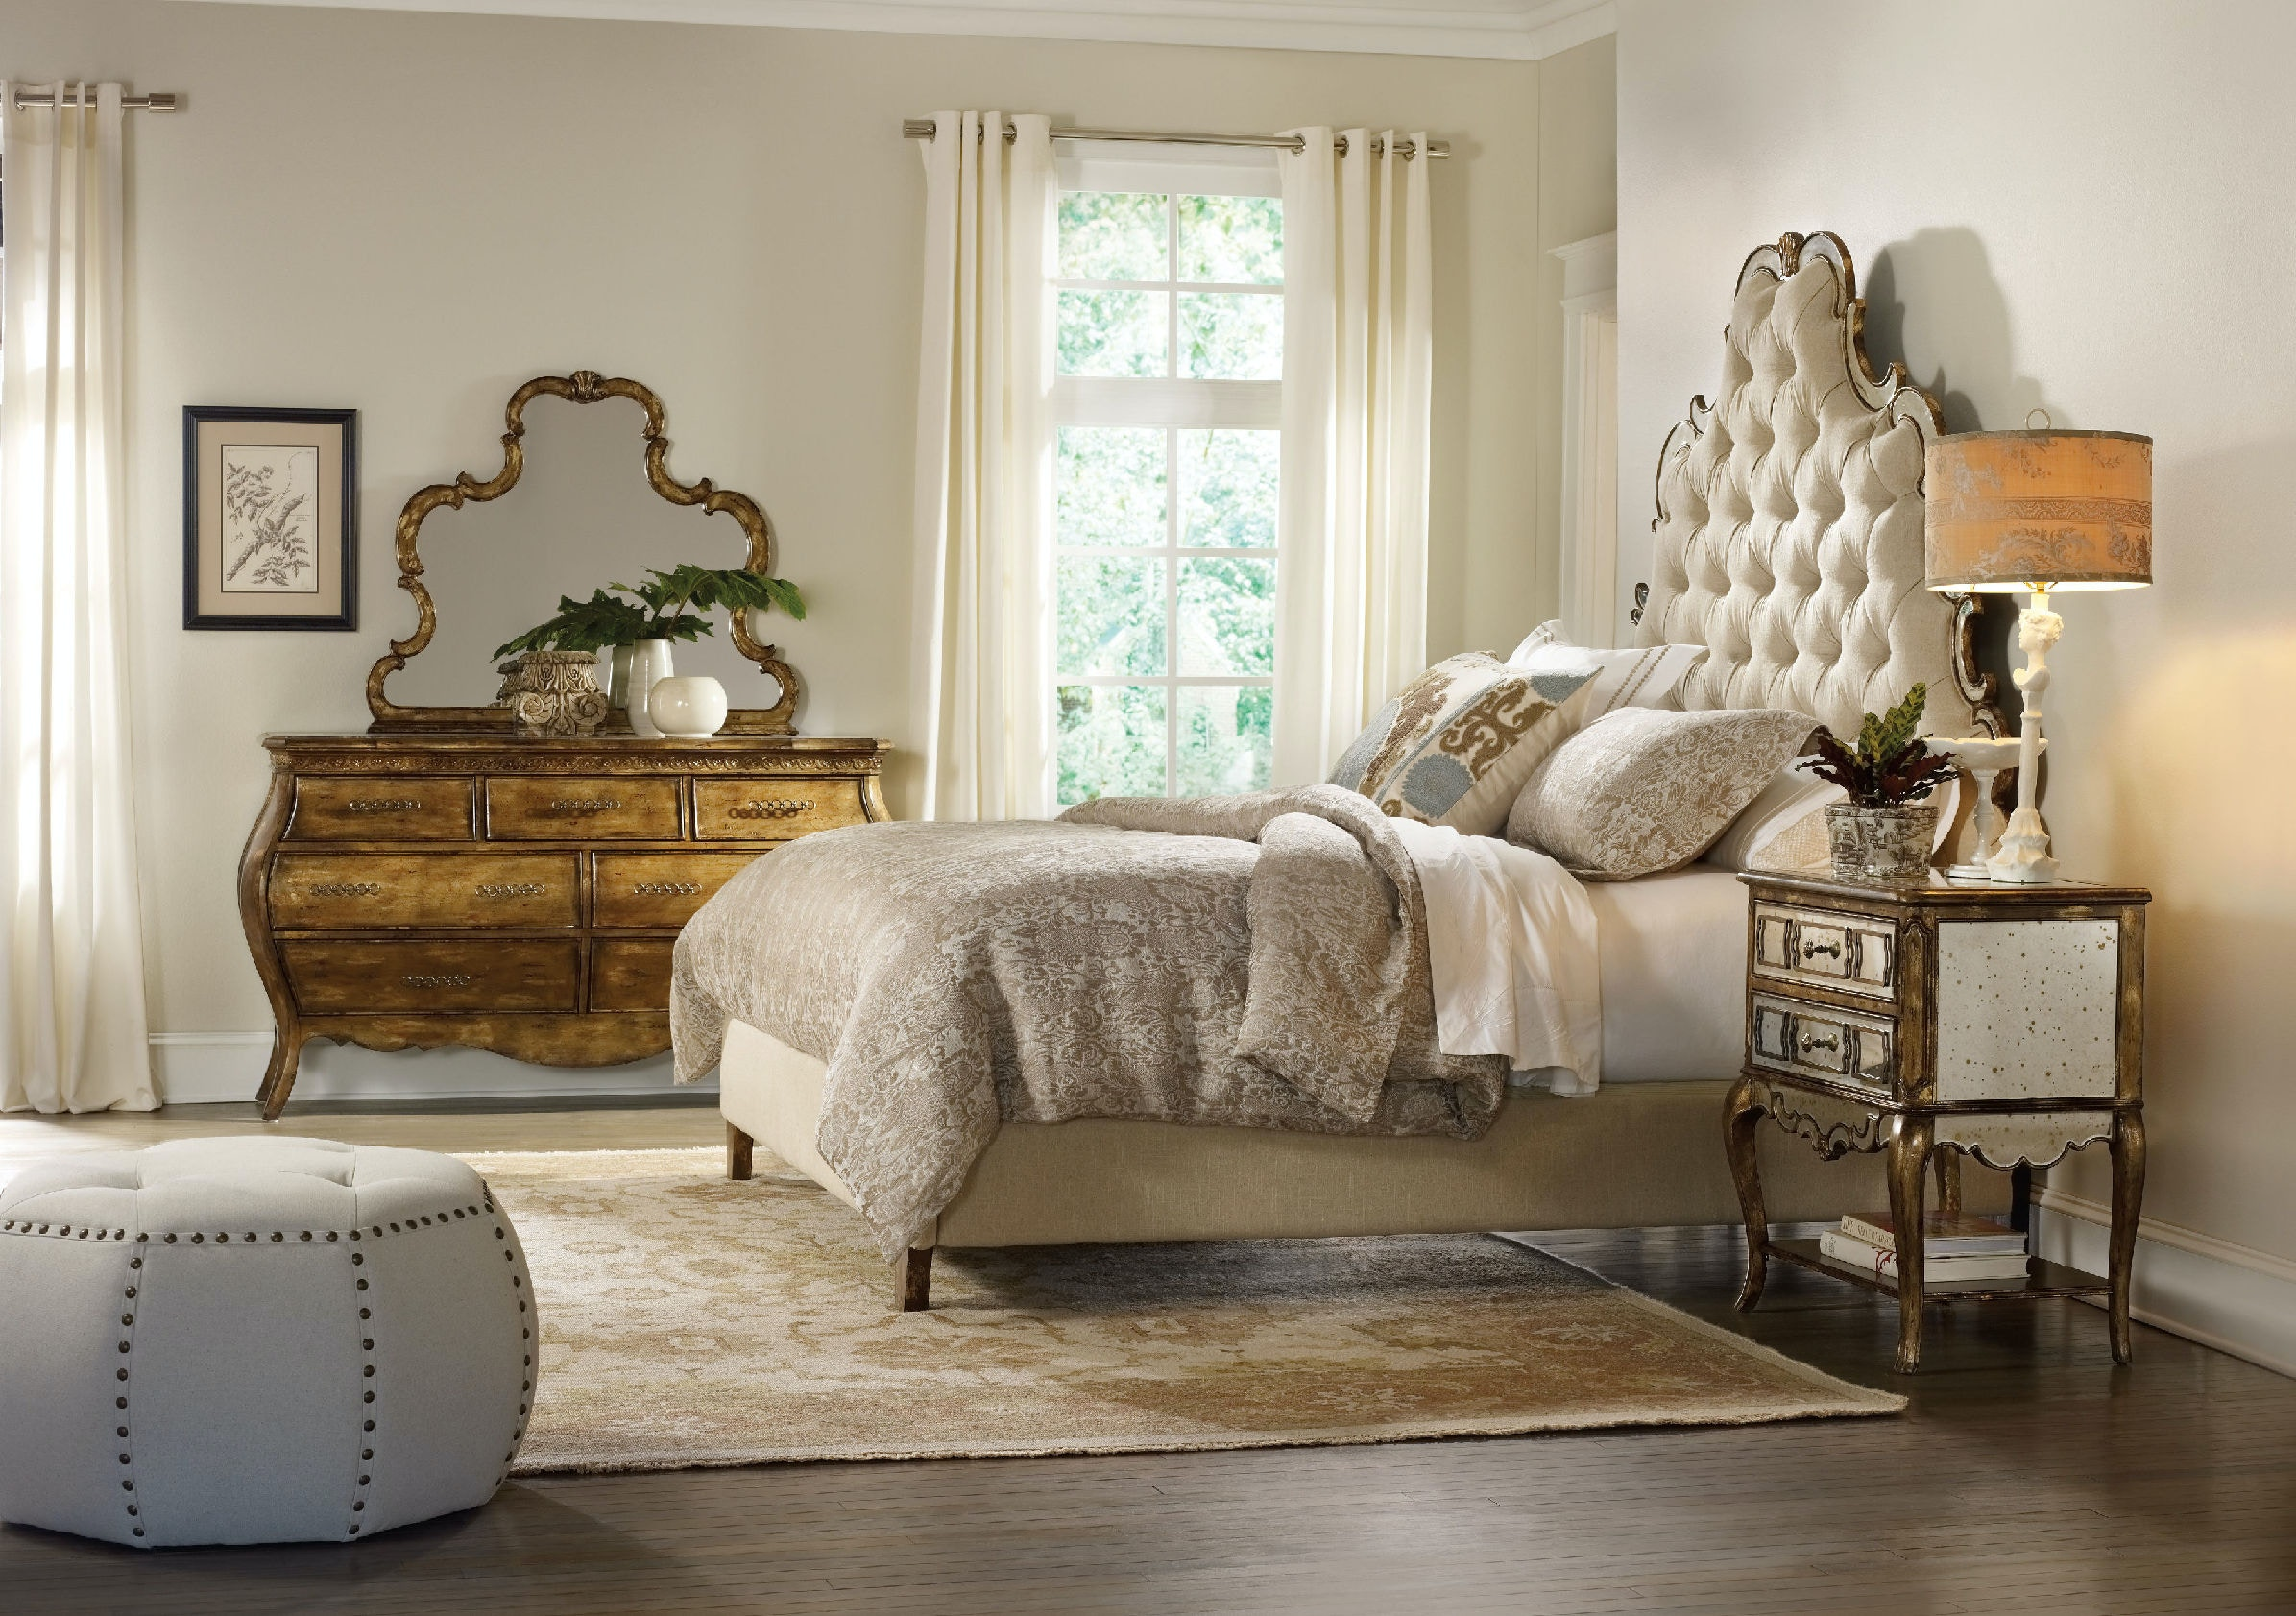 Hooker Furniture Bedroom Sanctuary Queen Tufted Bed - Bling 3016-90850